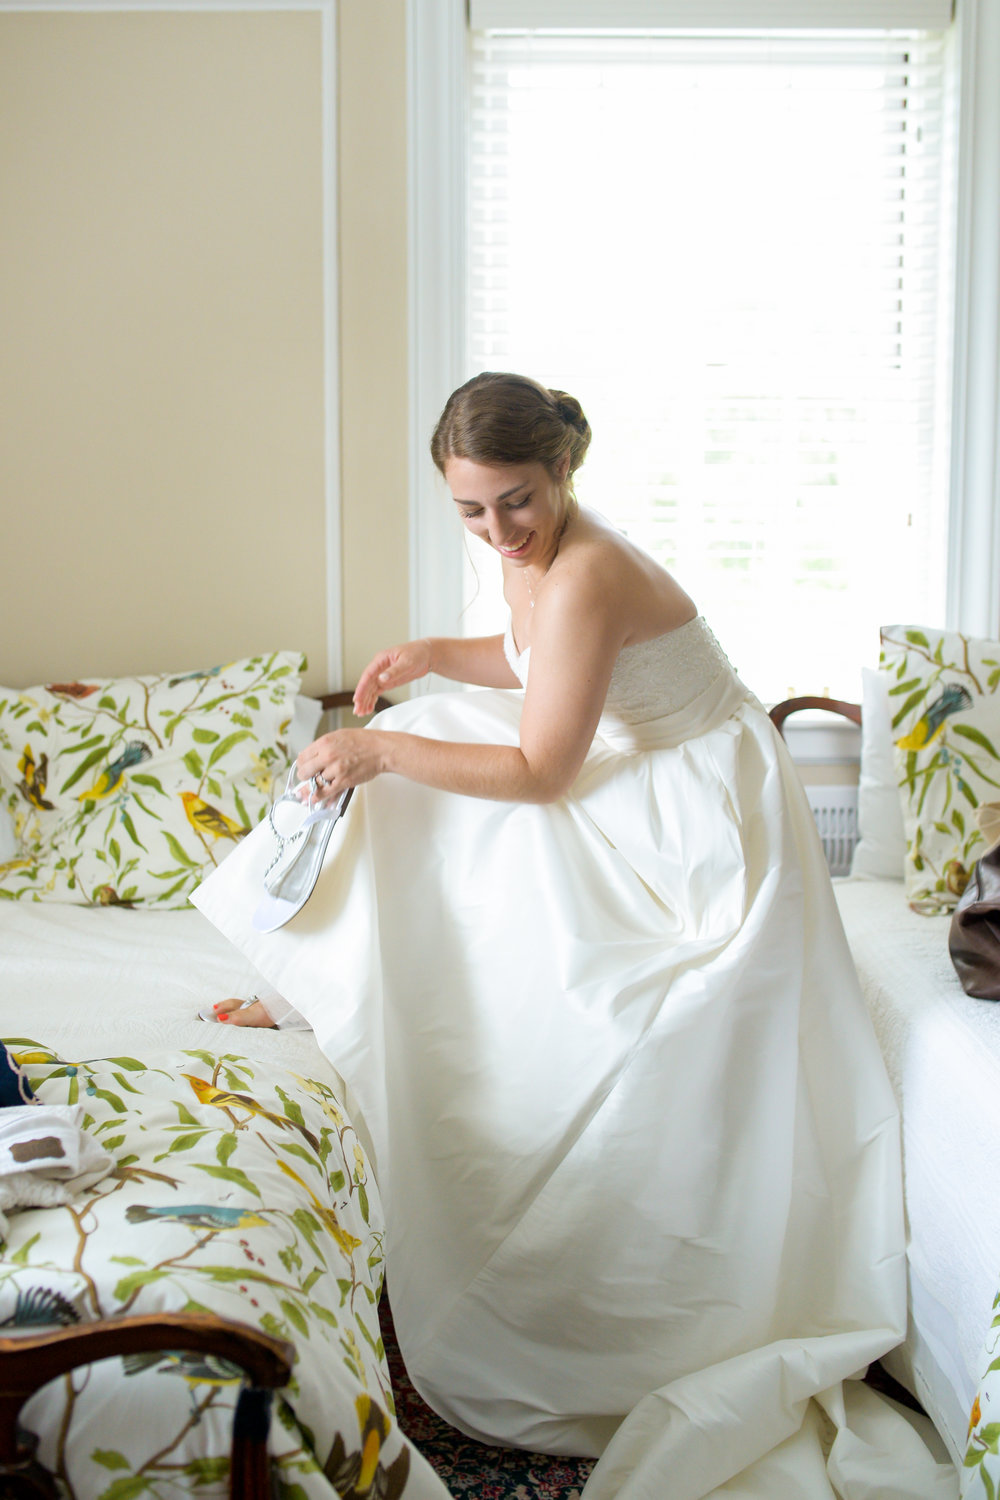 James of  88 Love Stories Photography  got this adorable shot of Katie! I love the pops of color from the comforters! Beautiful and candid.